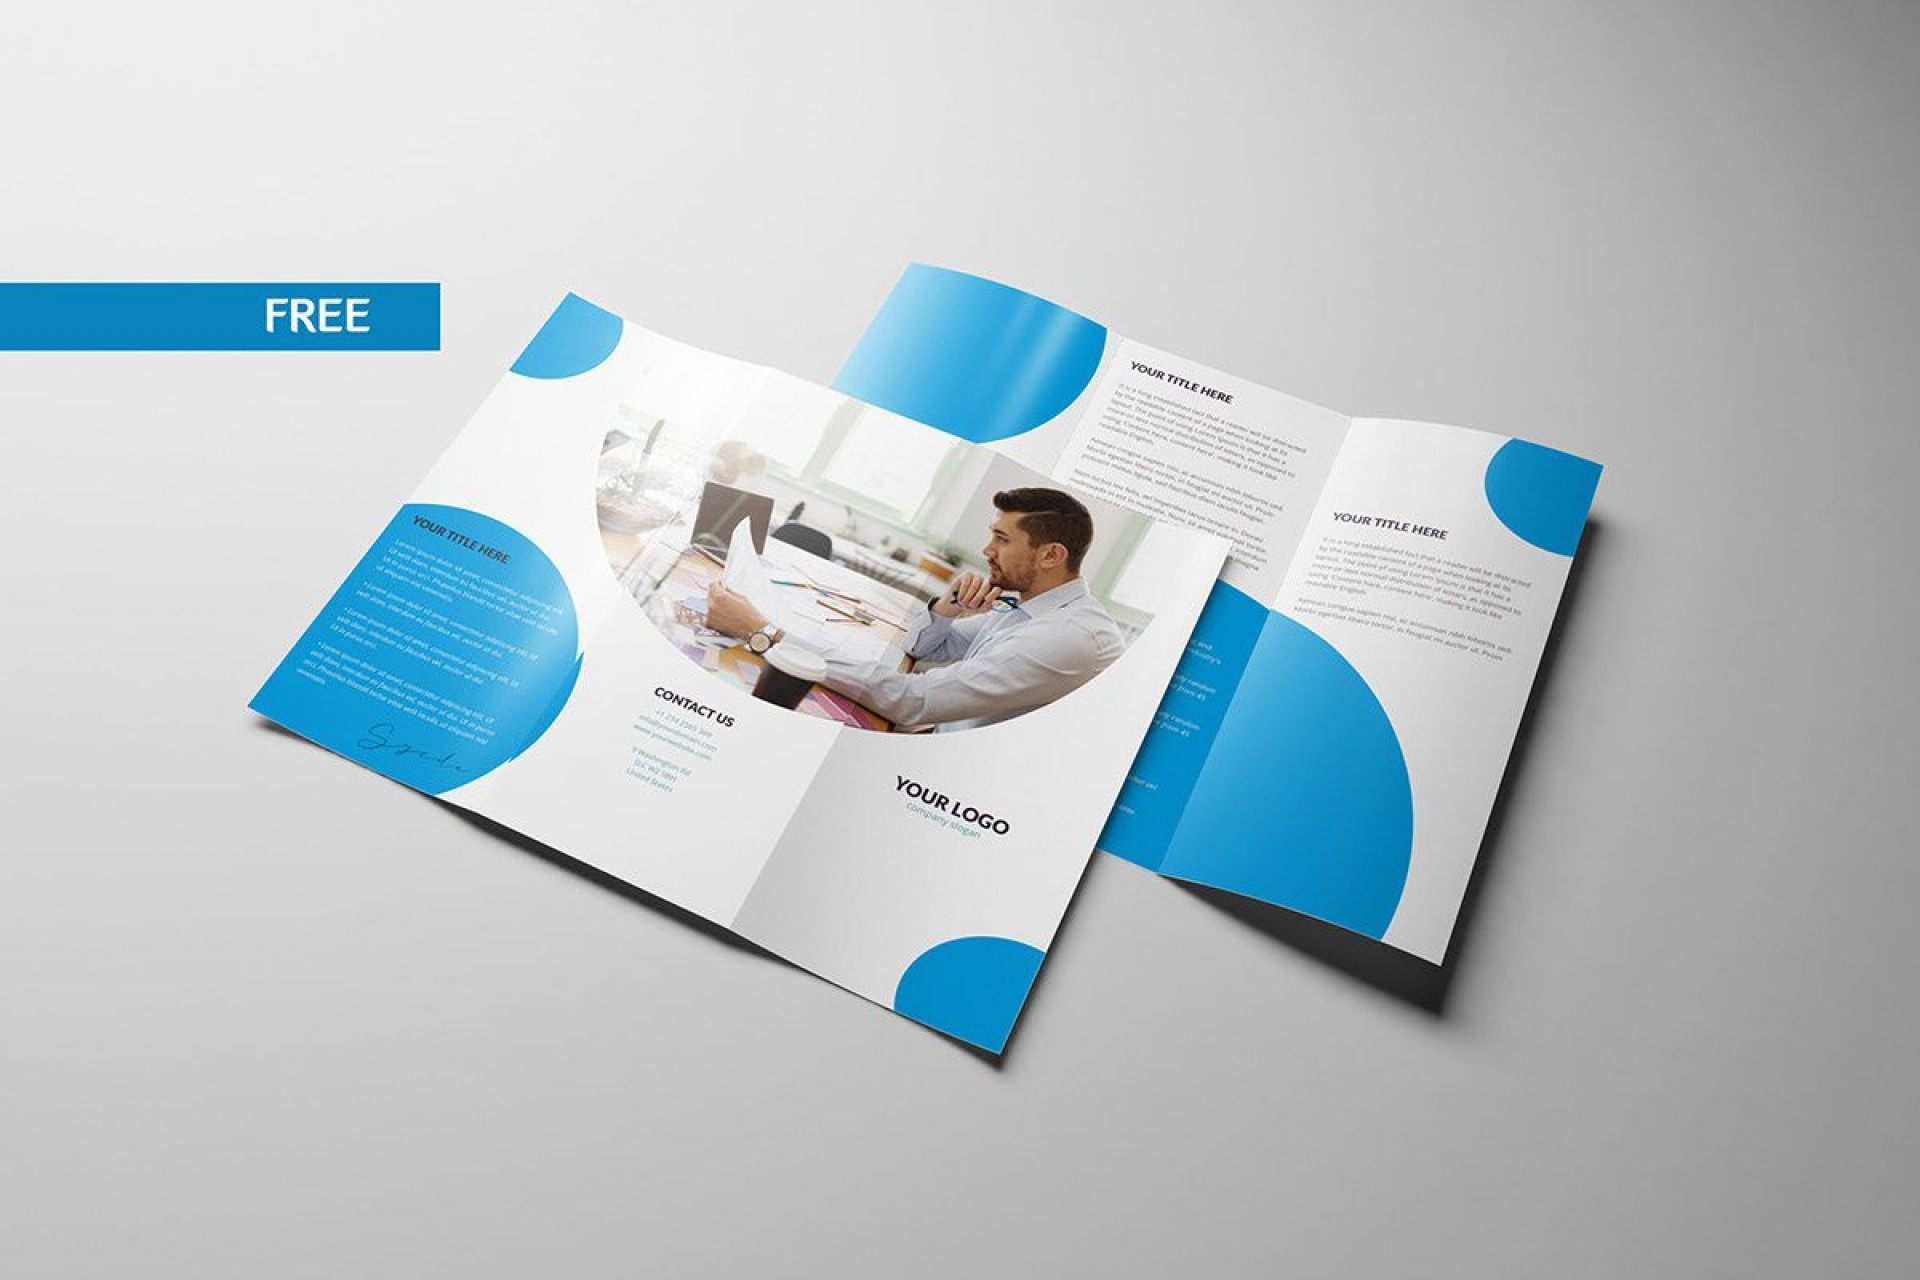 006 Surprising Tri Fold Template Free High Definition  Brochure Download Psd Microsoft Word1920